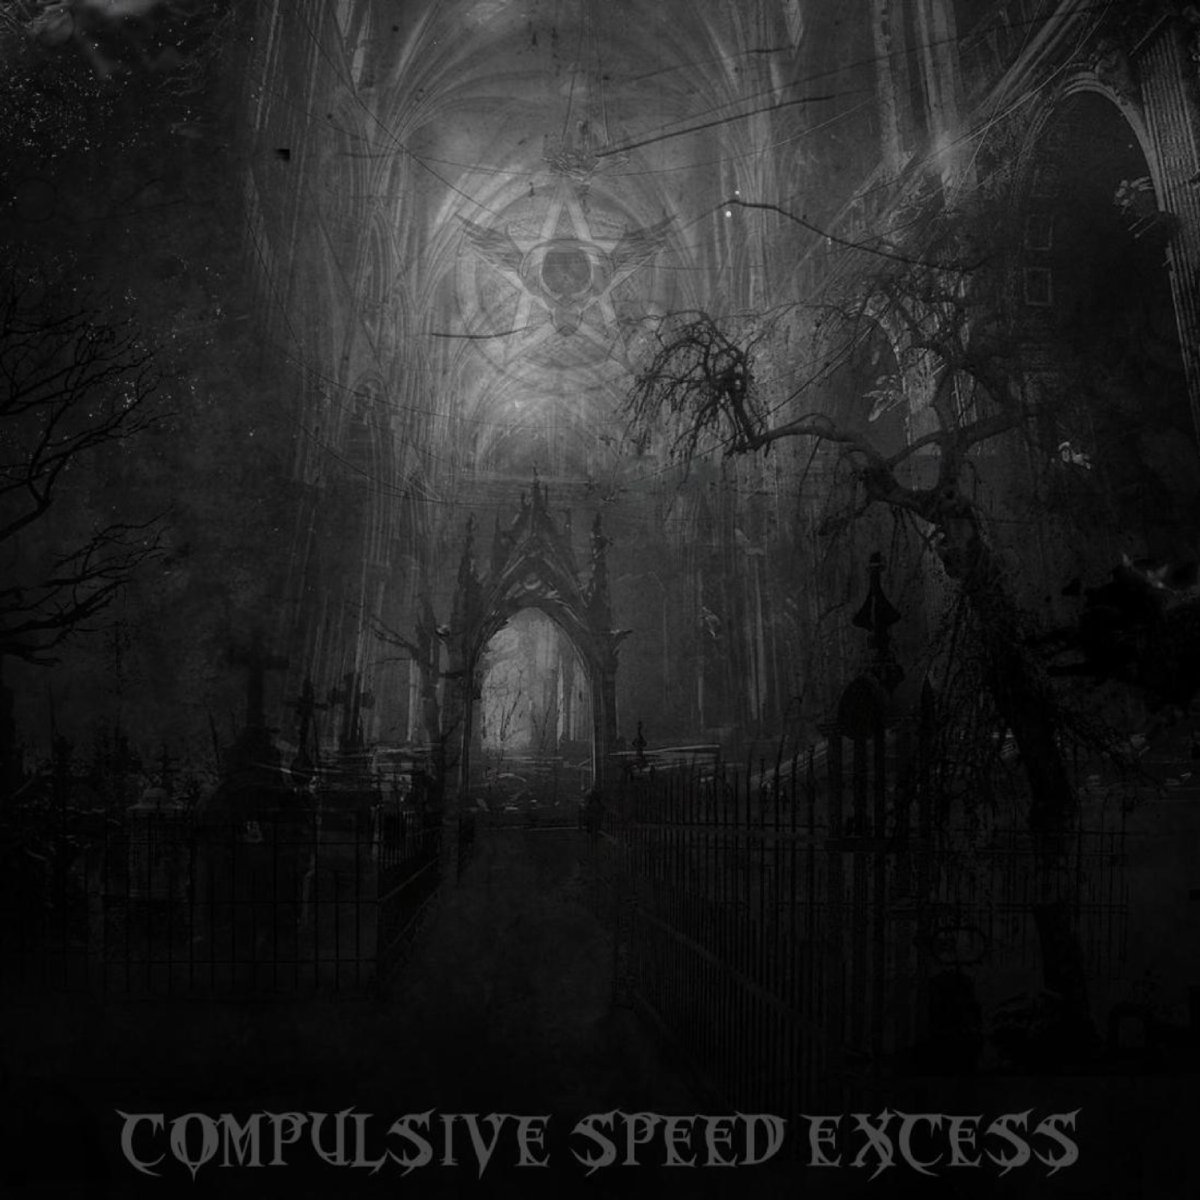 VA - Compulsive Speed Excess! [SWAN-066]